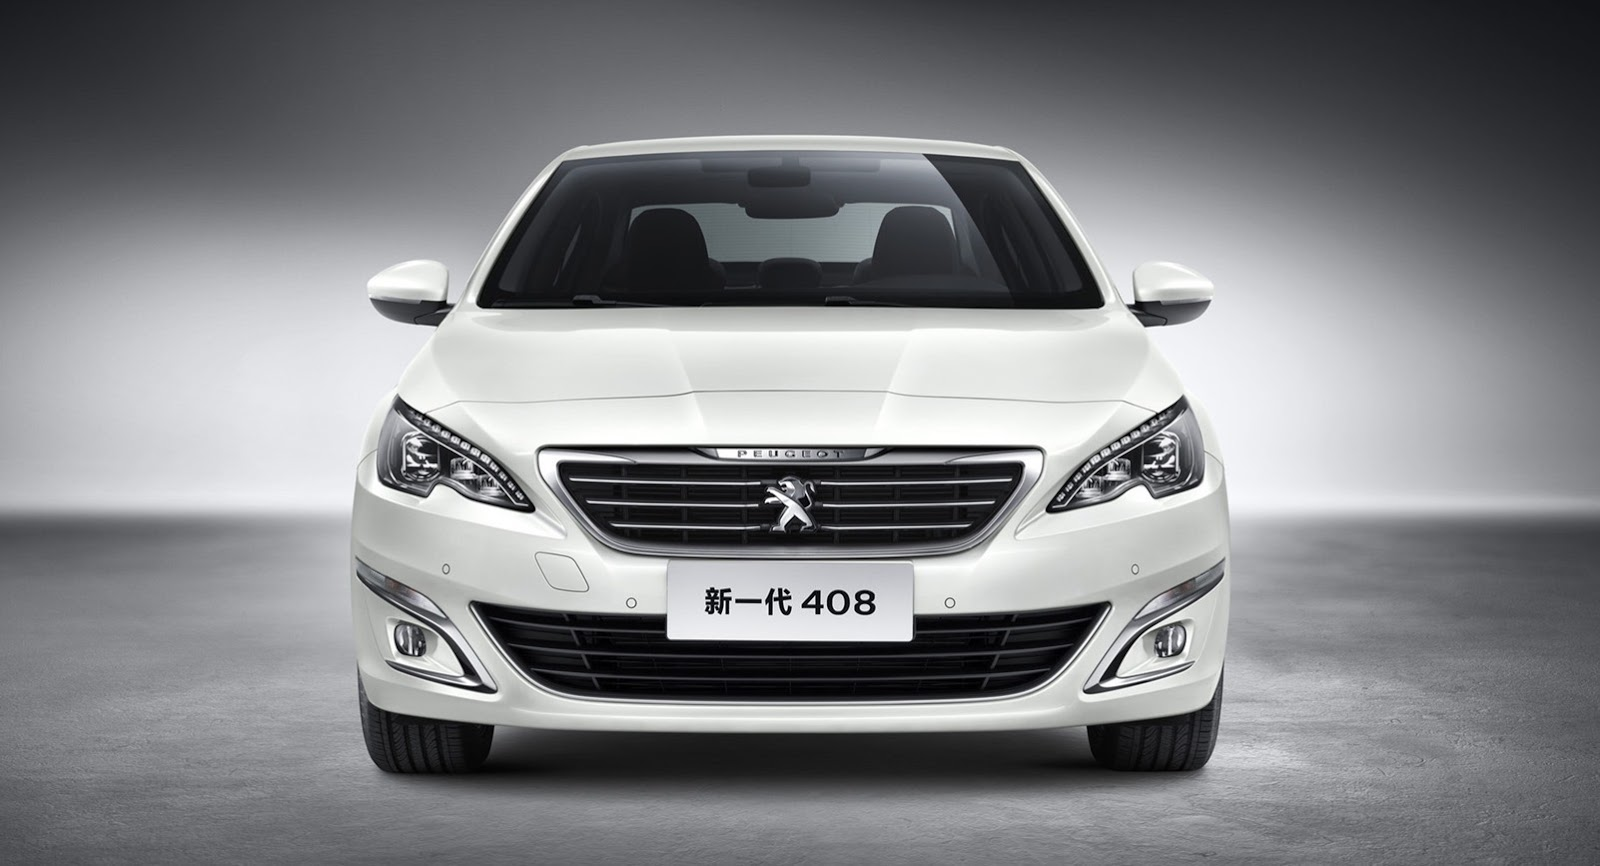 All-New Peugeot 408 Sedan Revealed In China, Is A Longer